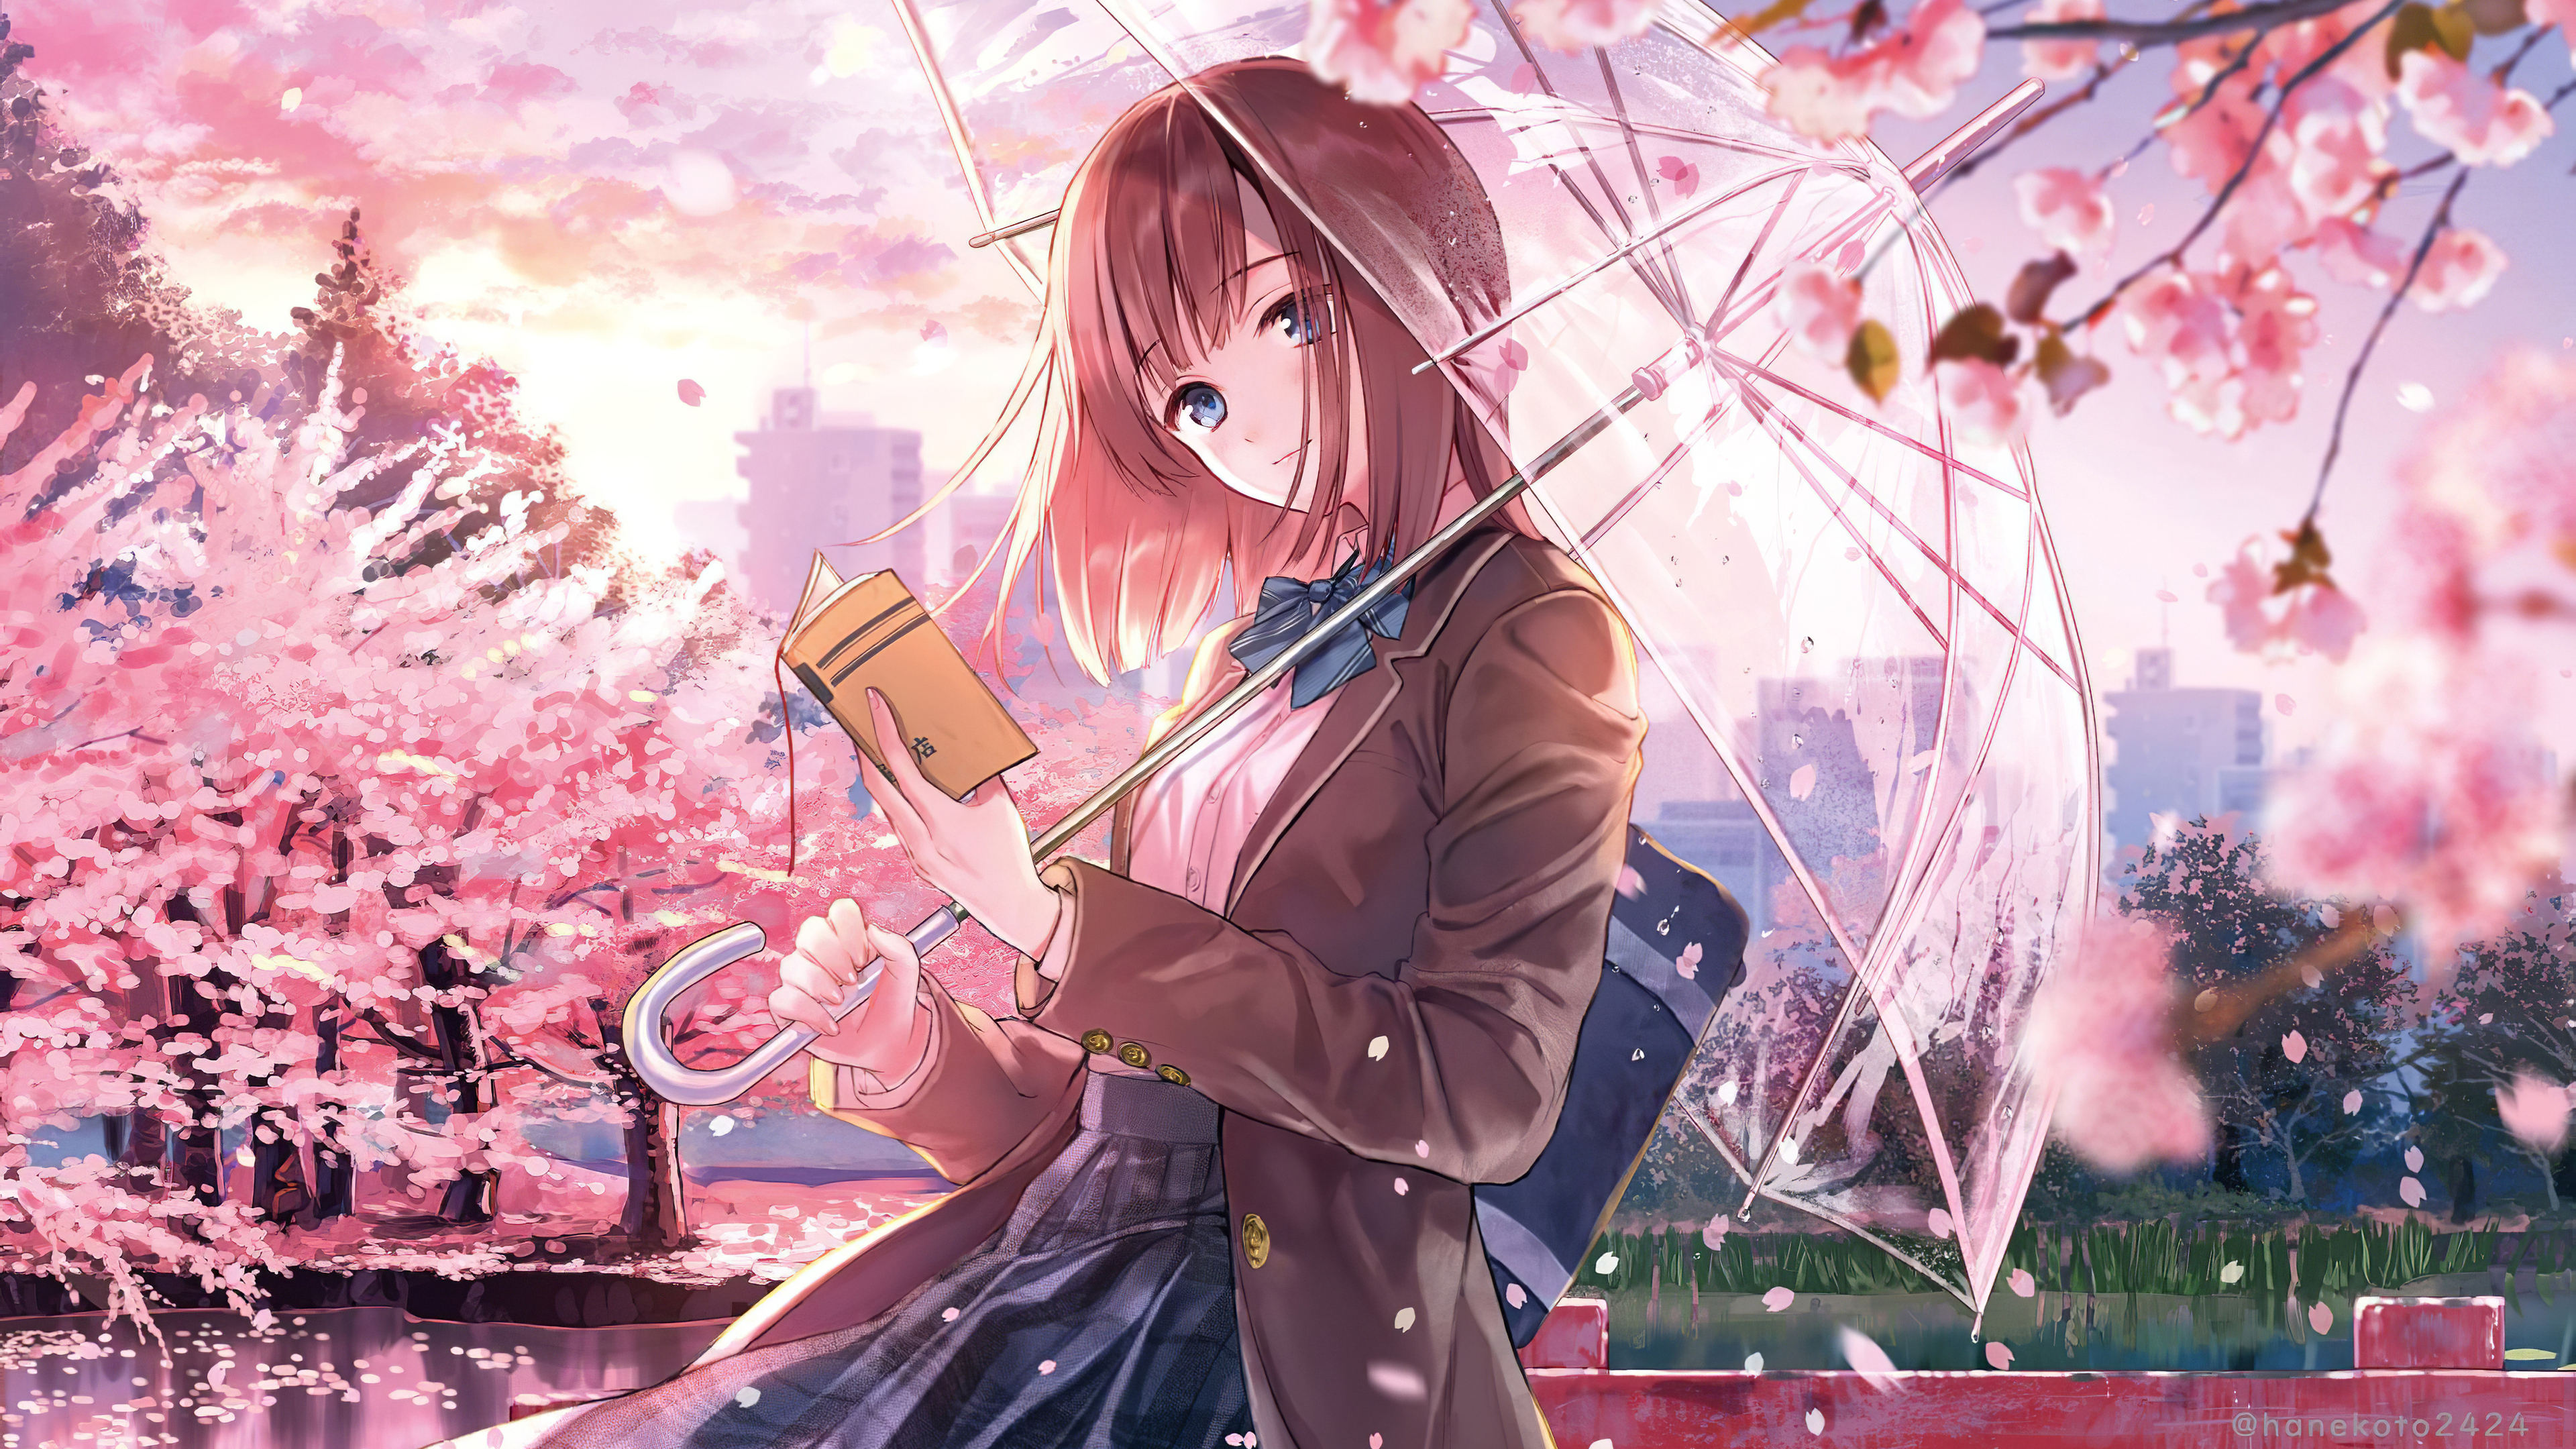 3840x2160 Anime Girl Cherry Blossom Season 5k 4k HD 4k ...